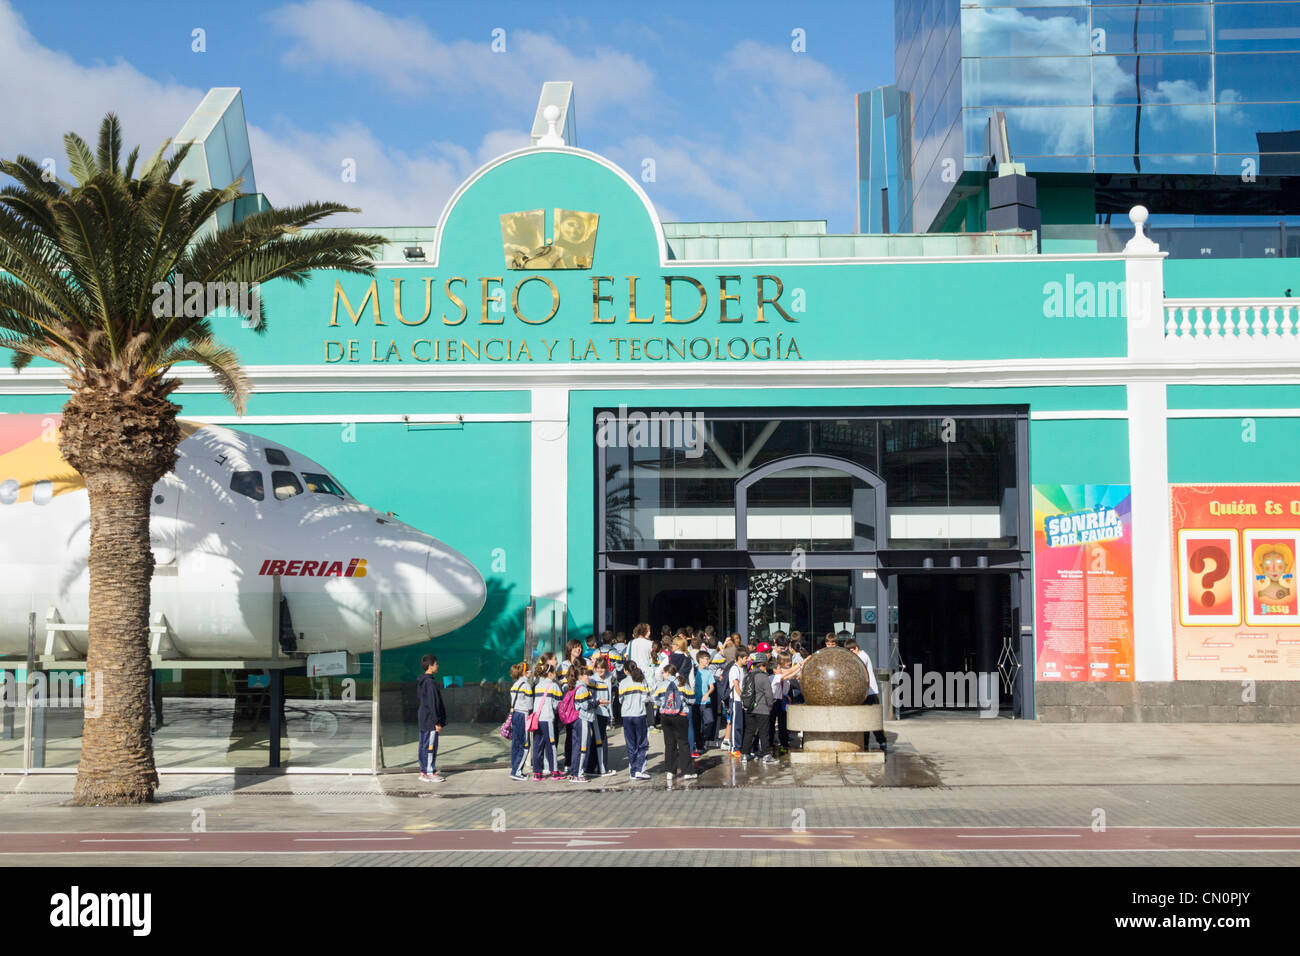 Spanish schoolchildren entering science and technolohy museum in Las Palmas. Gran Canaria, Canary Islands, Spain - Stock Image